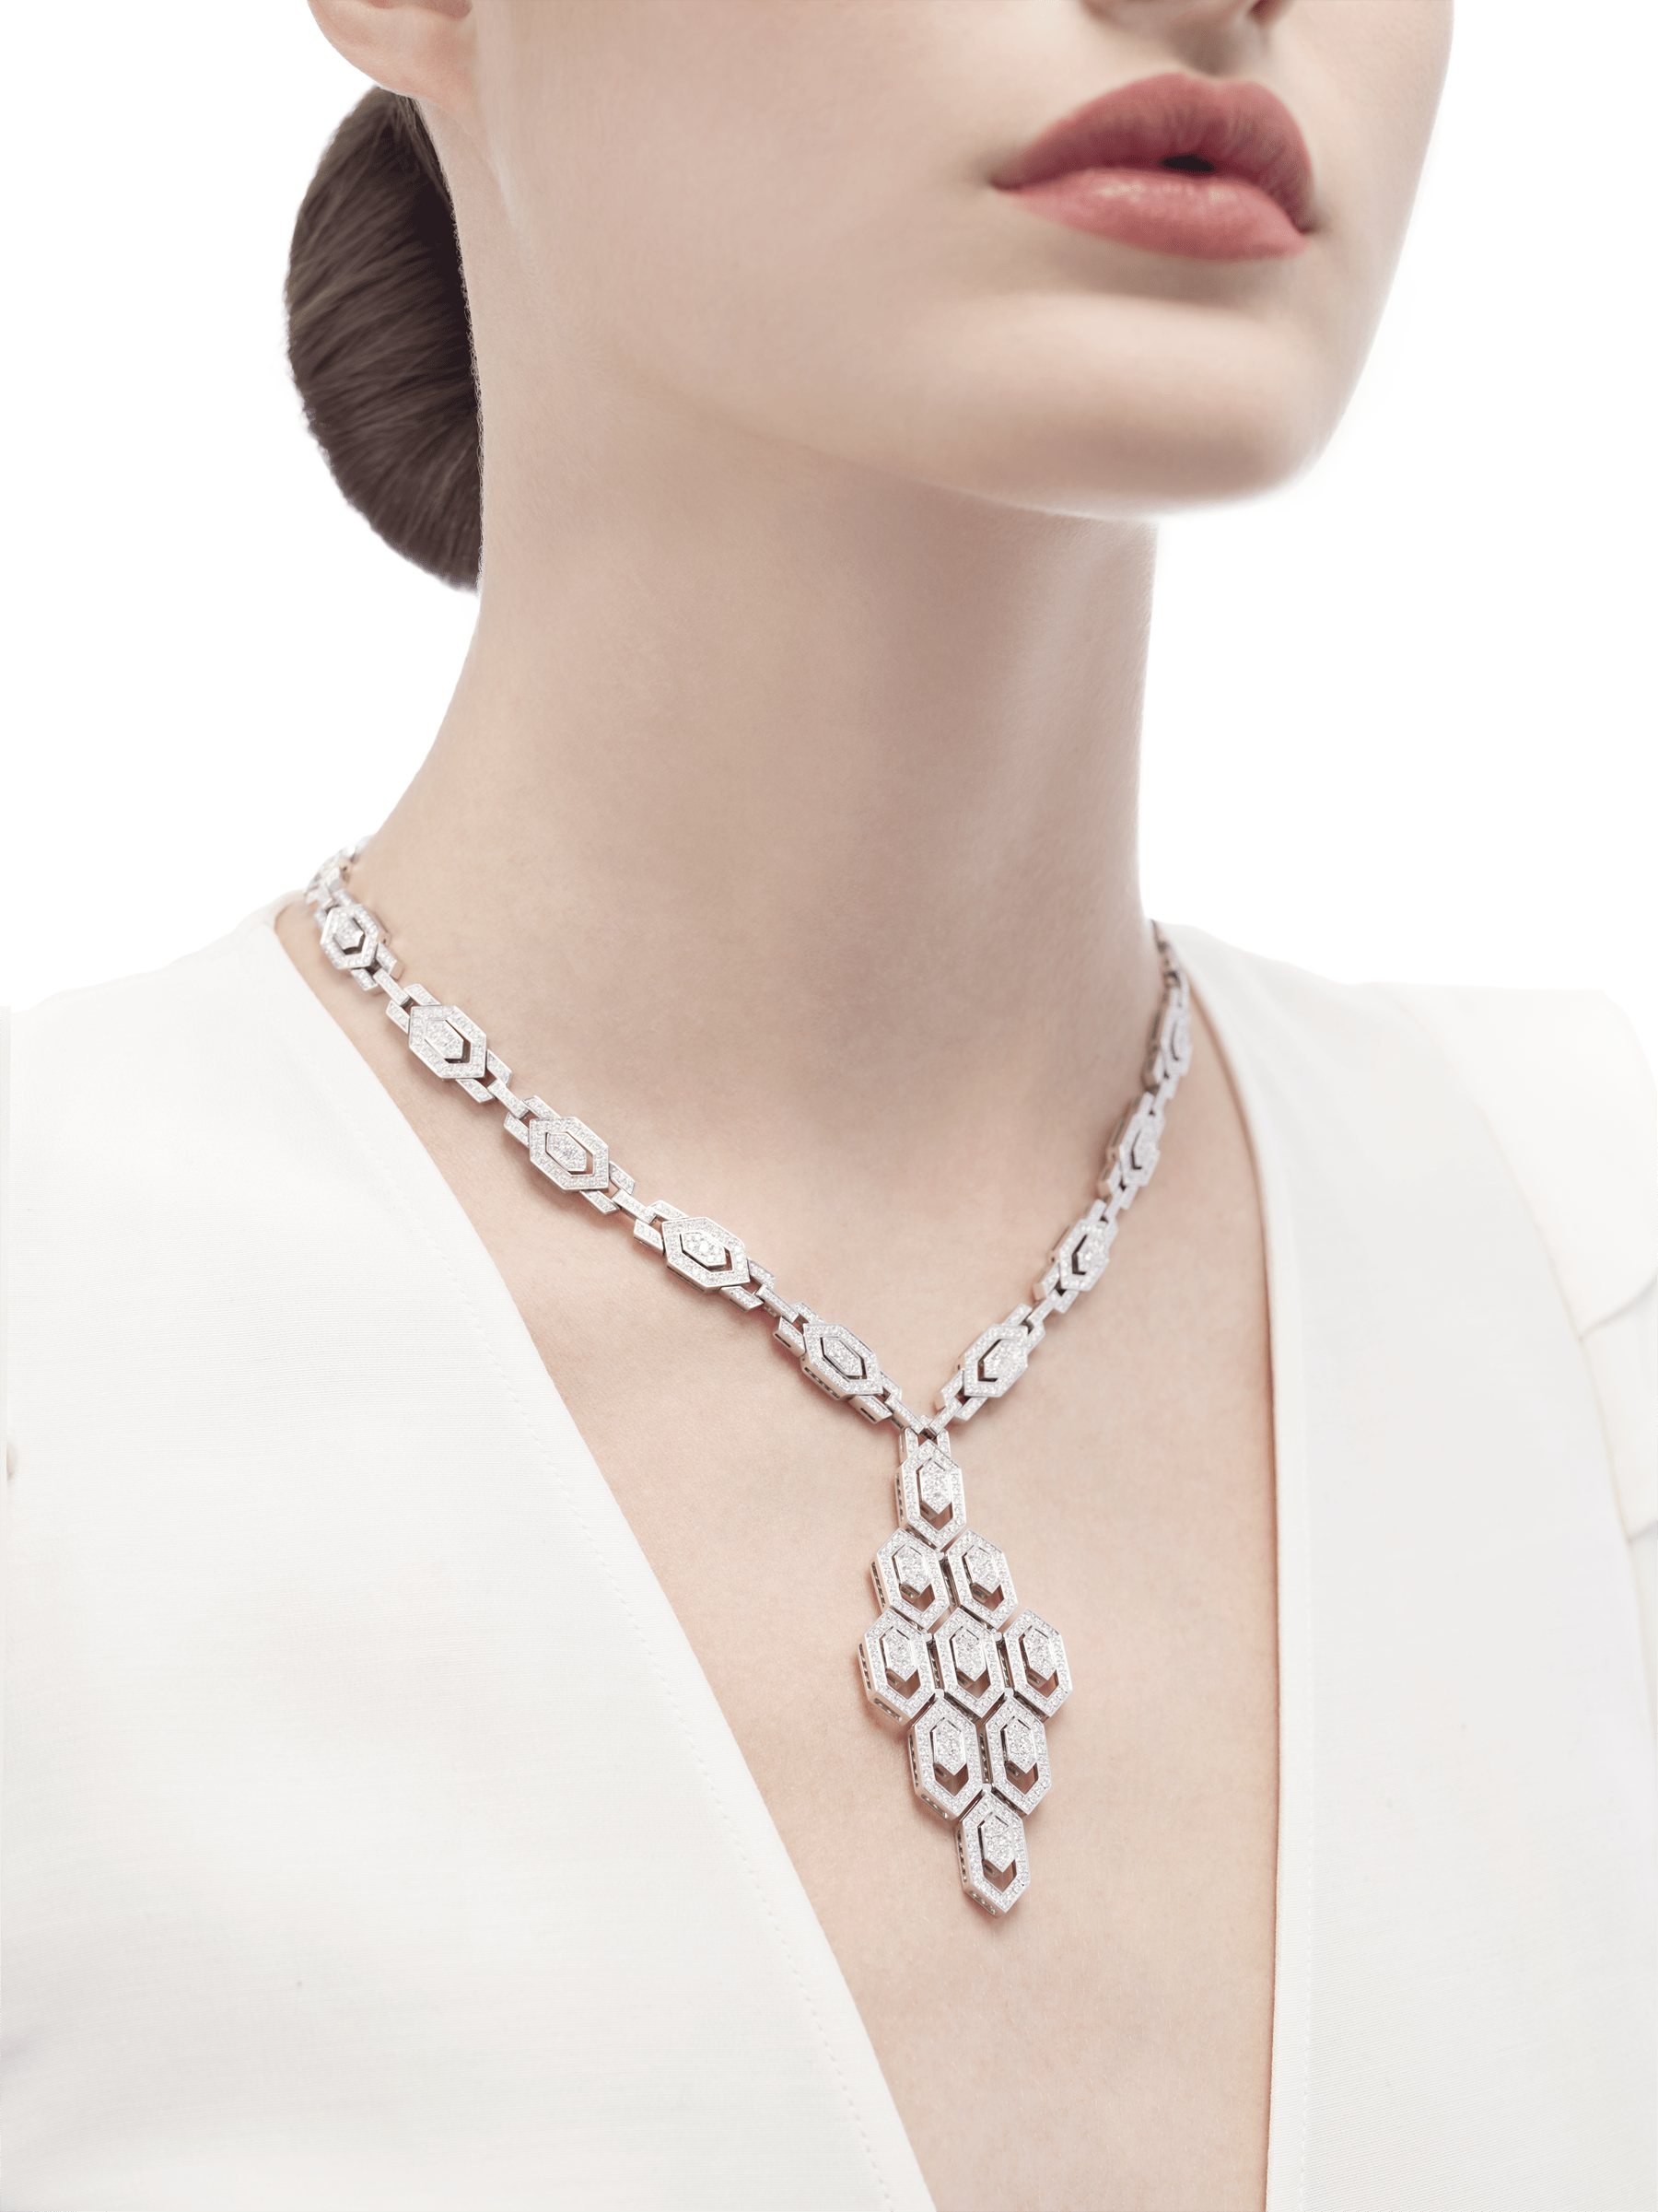 Serpenti Necklace in 18 kt white gold and pavè diamonds (8.66 ct) 353843 image 2